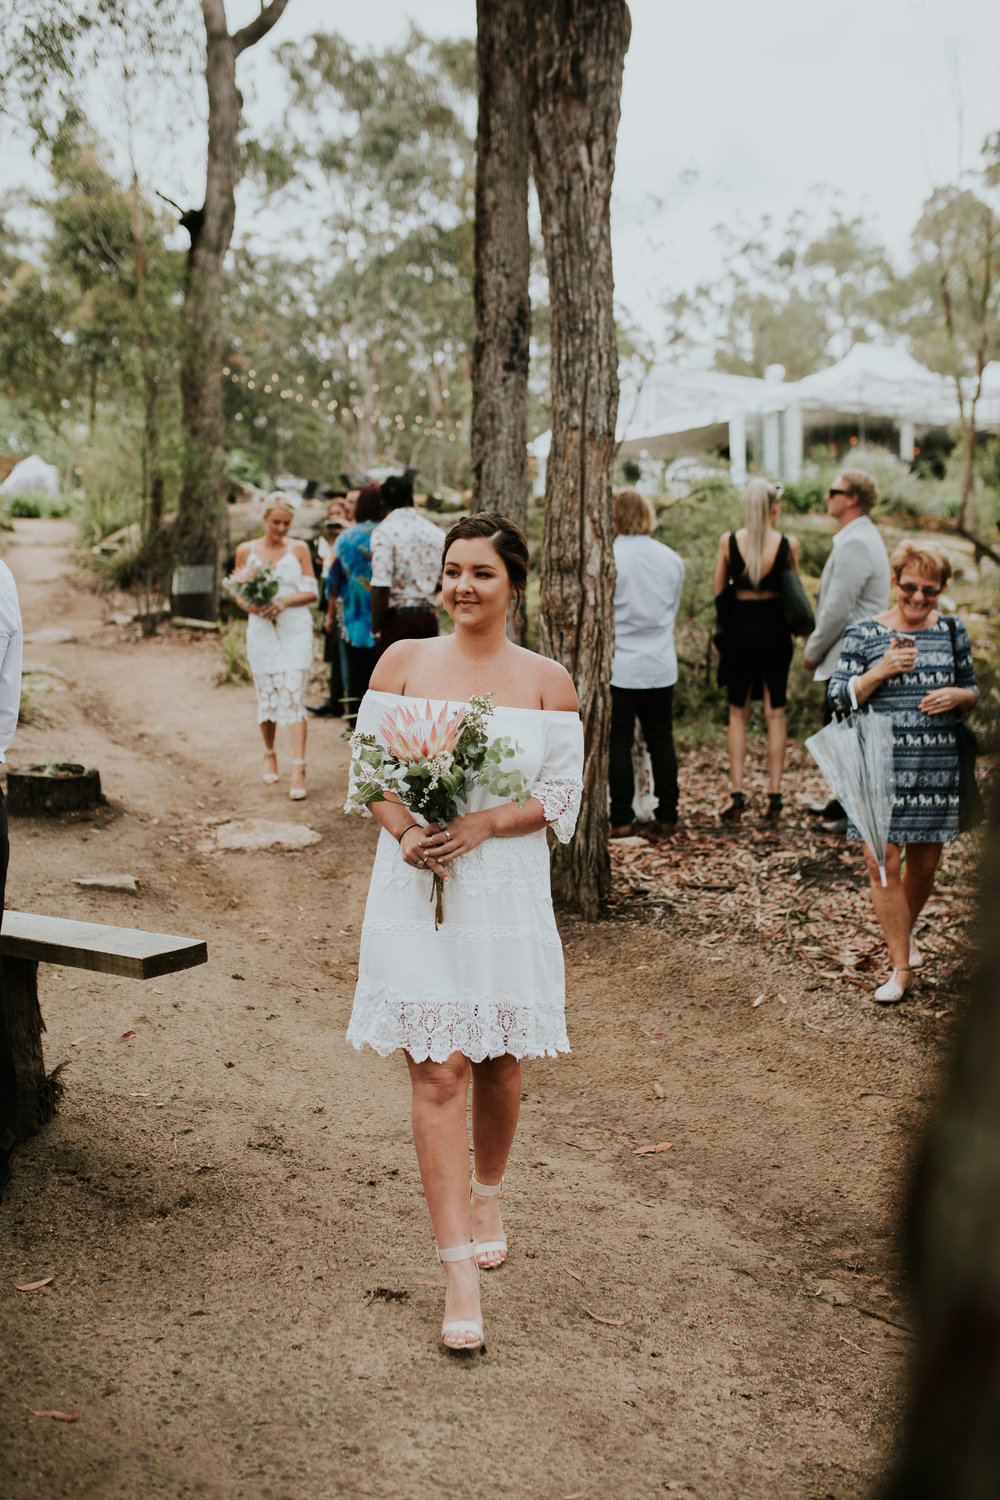 Jesse+Matt+Kangaroo+Valley+Wildwood+Boho+Relaxed+wedding+-89.jpg